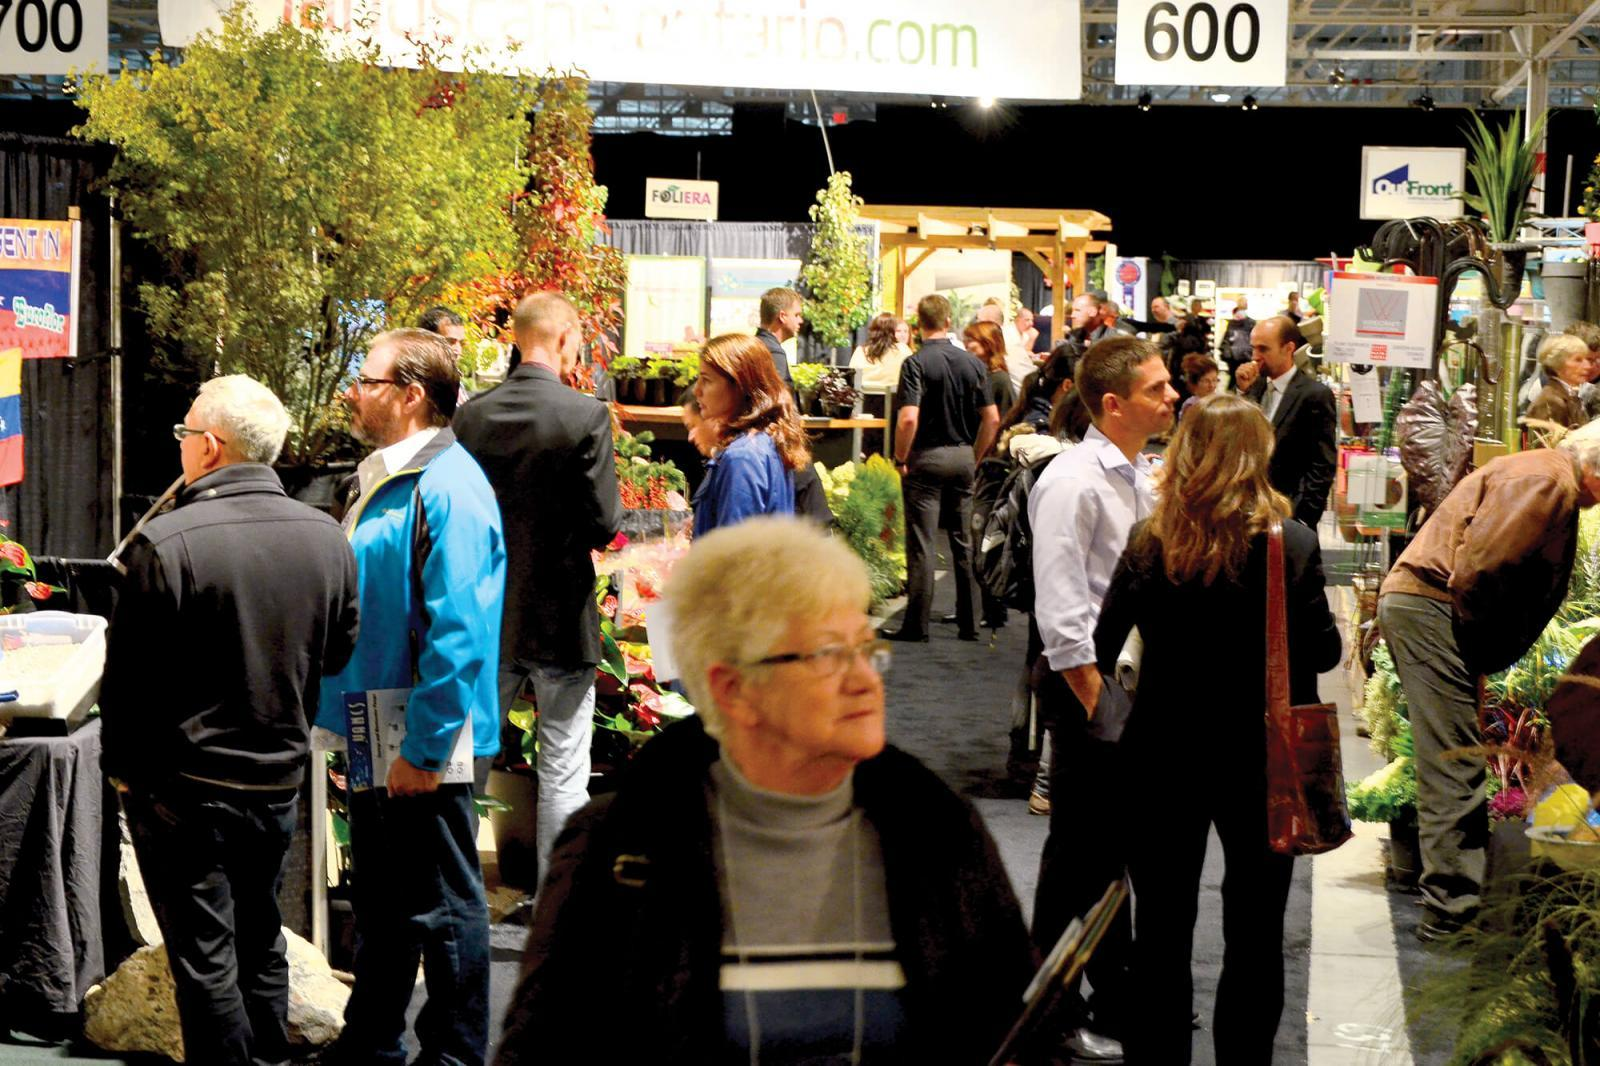 The walkways were filled during peak times on the trade show floor.